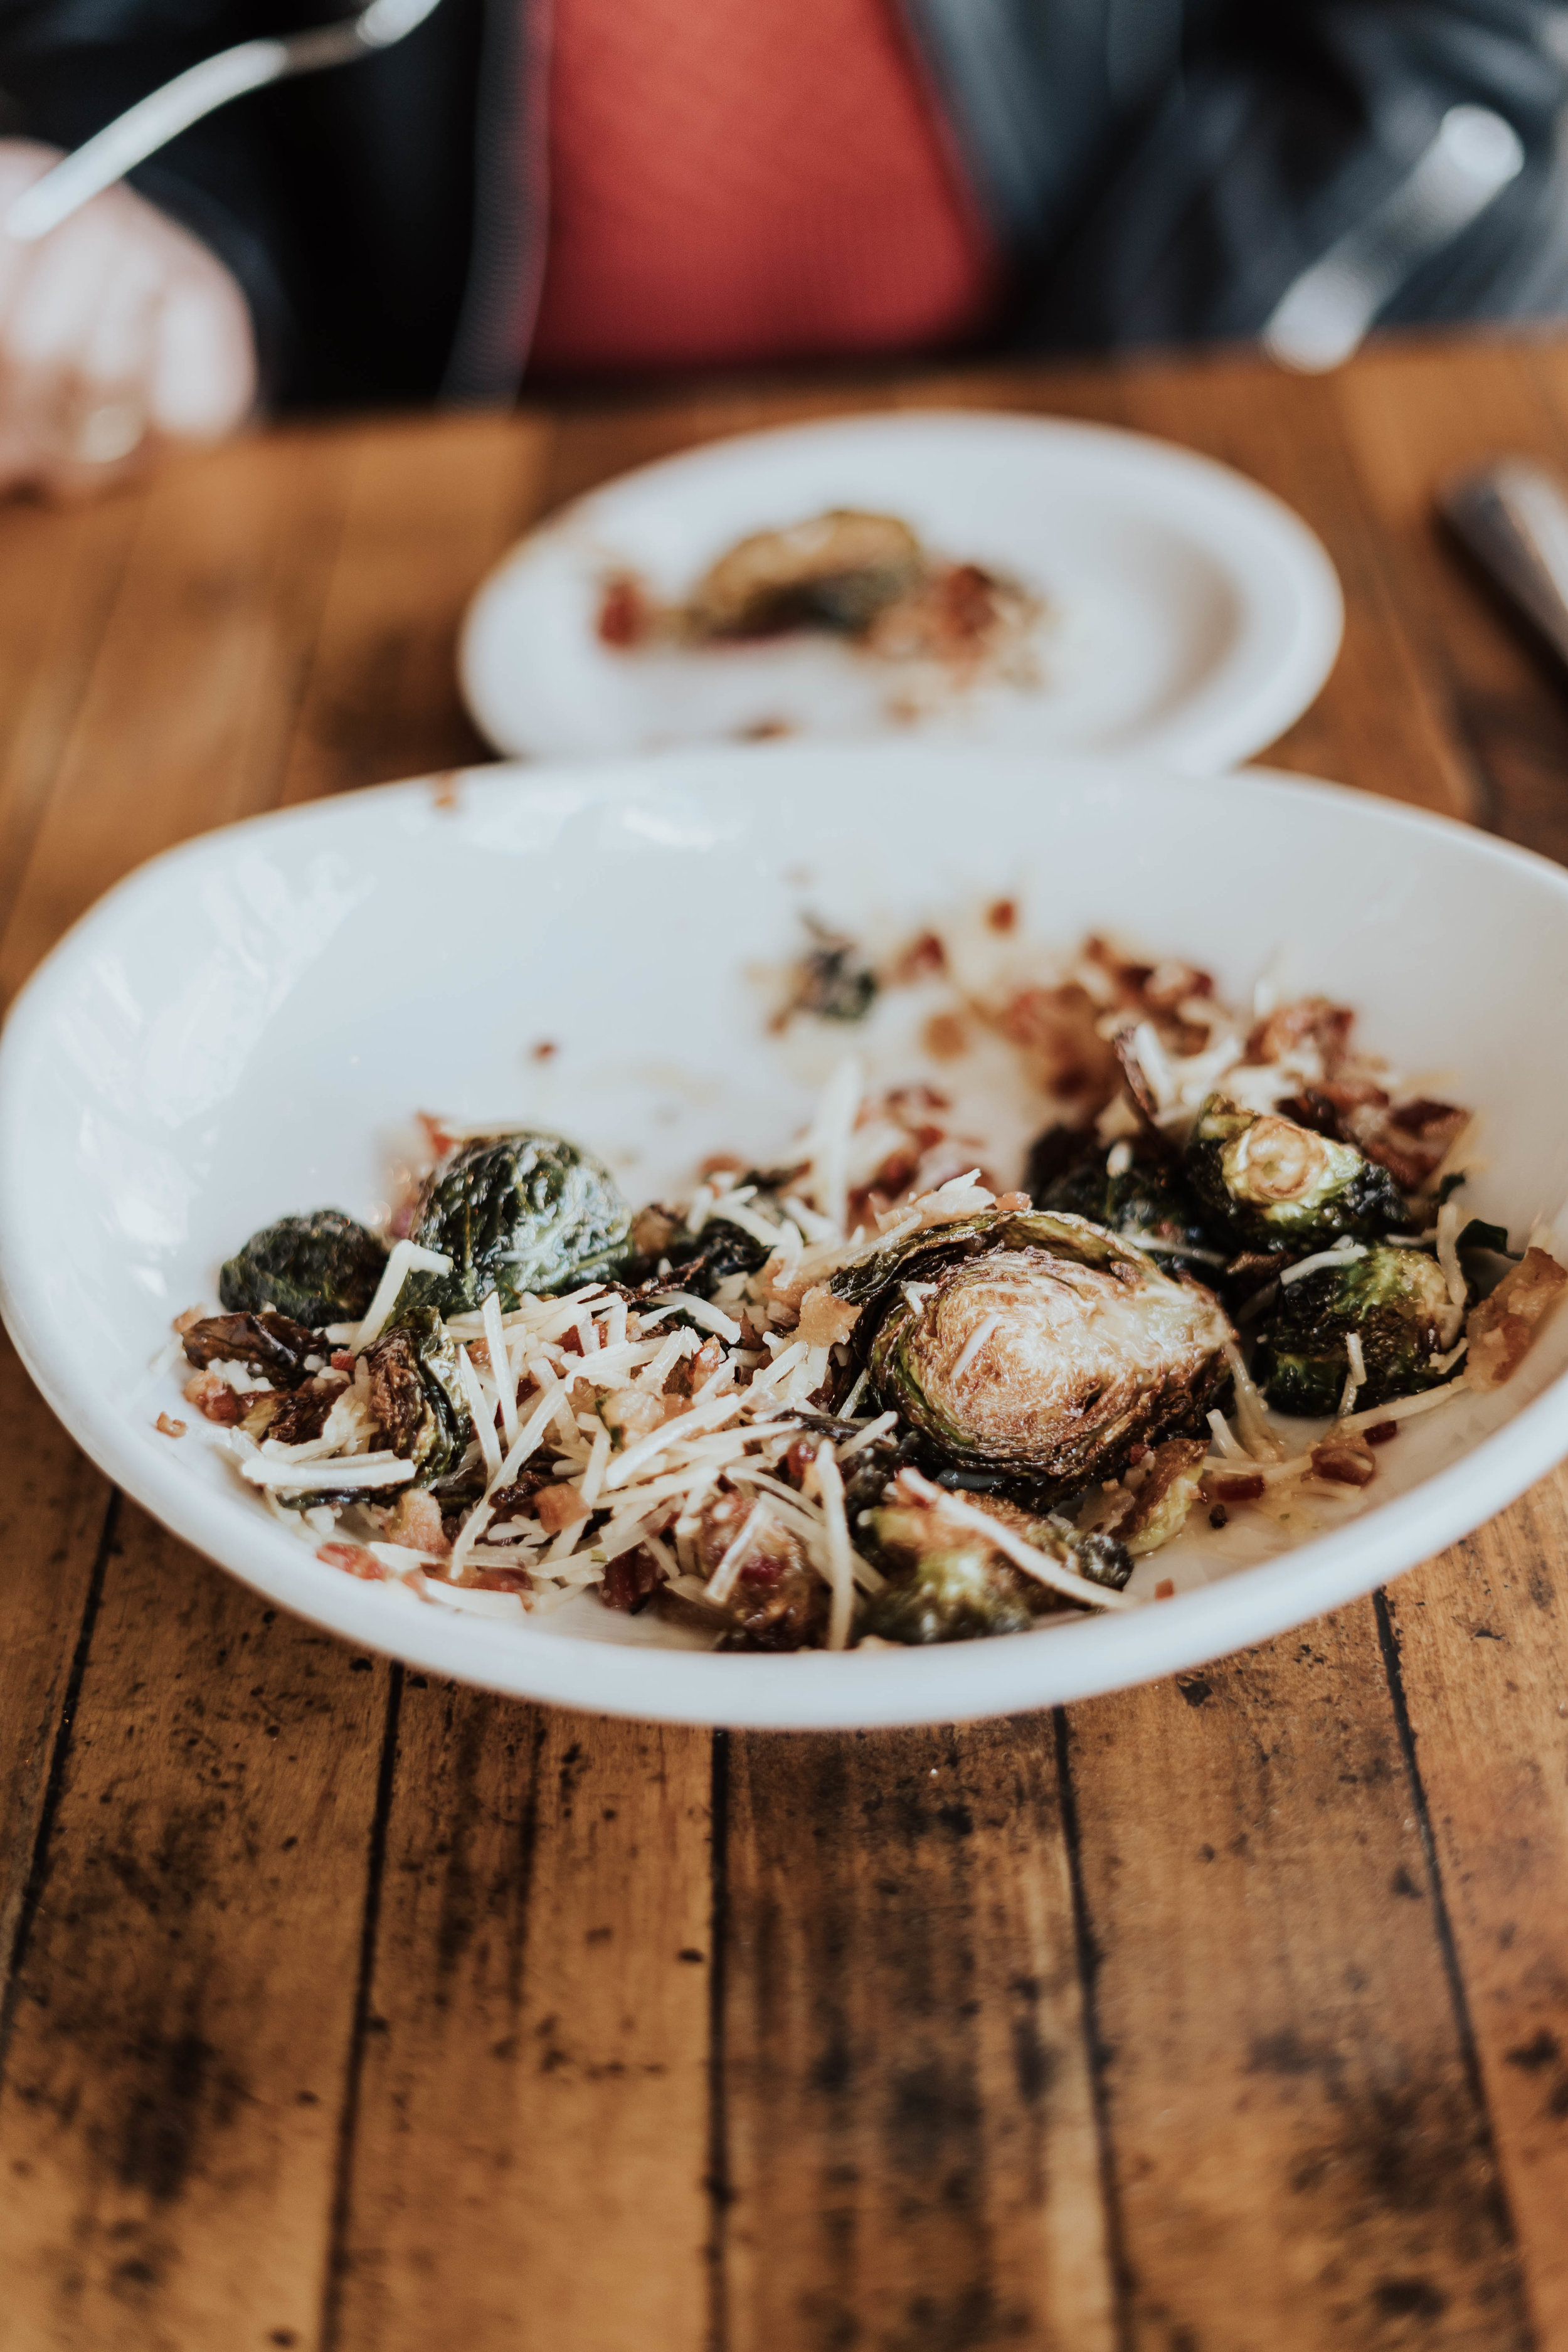 Delicious fried brussels sprouts with bacon, parmesan, and honey drizzle at Benchmark Eatery, Santa Barbara